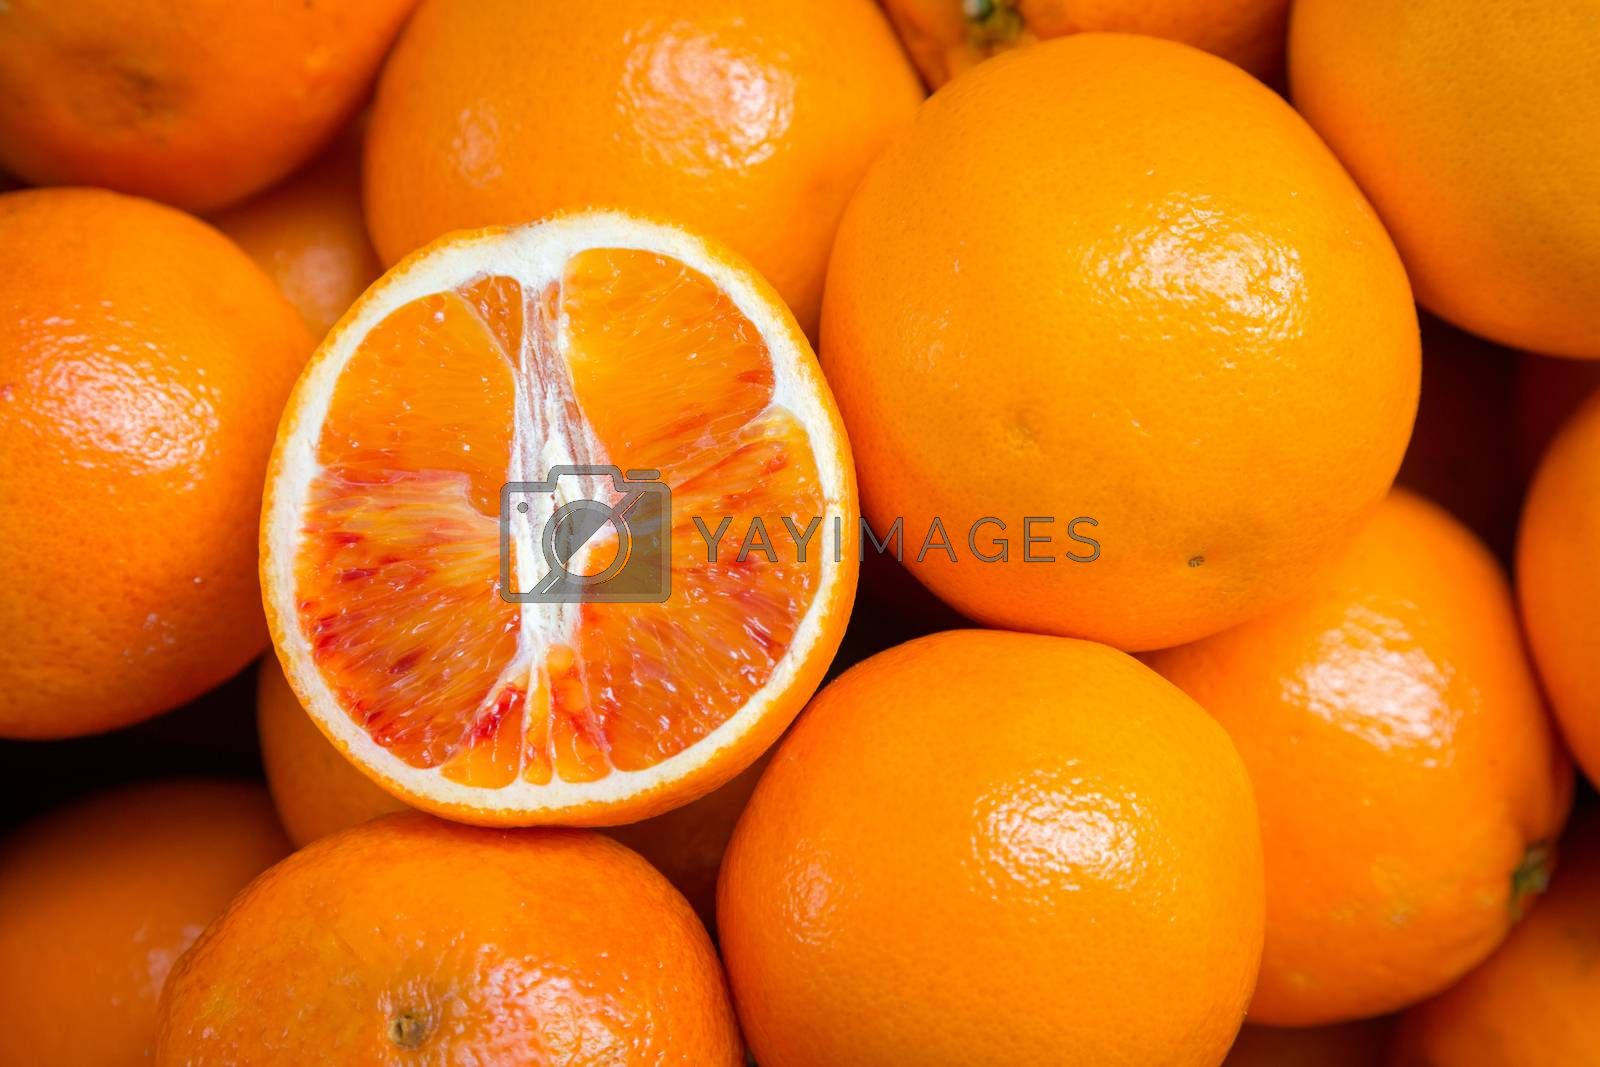 Citrus fruits background. Fresh tangerines oranges on market. Group of freshly picked oranges with their leaves forming a background. Top view of slices, whole of orange fruits and leaves close up.